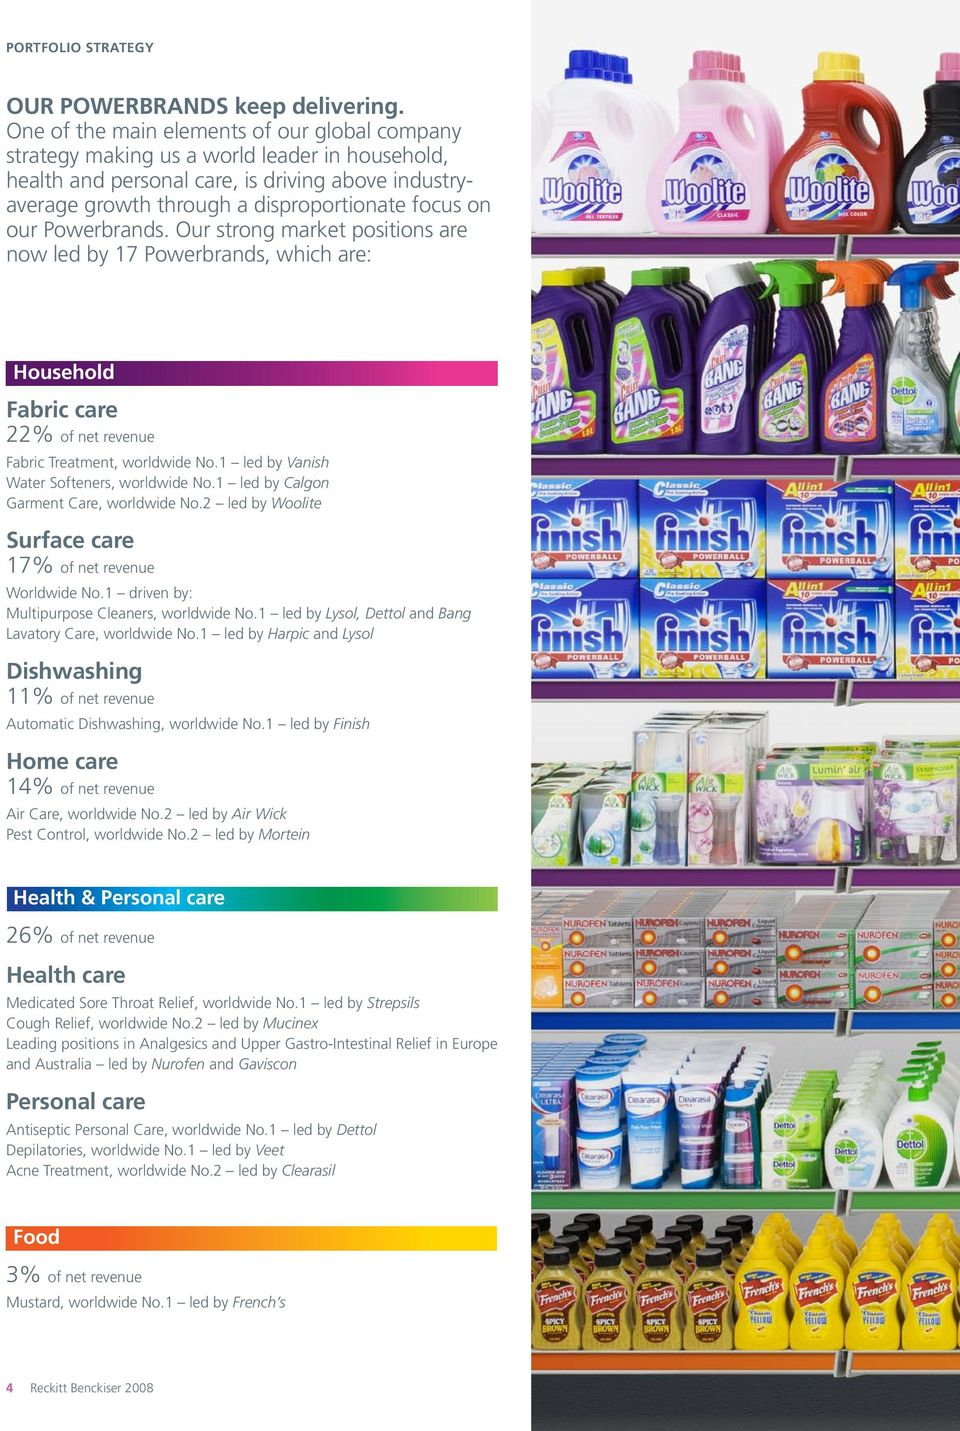 our Powerbrands. Our strong market positions are now led by 17 Powerbrands, which are: Household Fabric care 22% of net revenue Fabric Treatment, worldwide No.